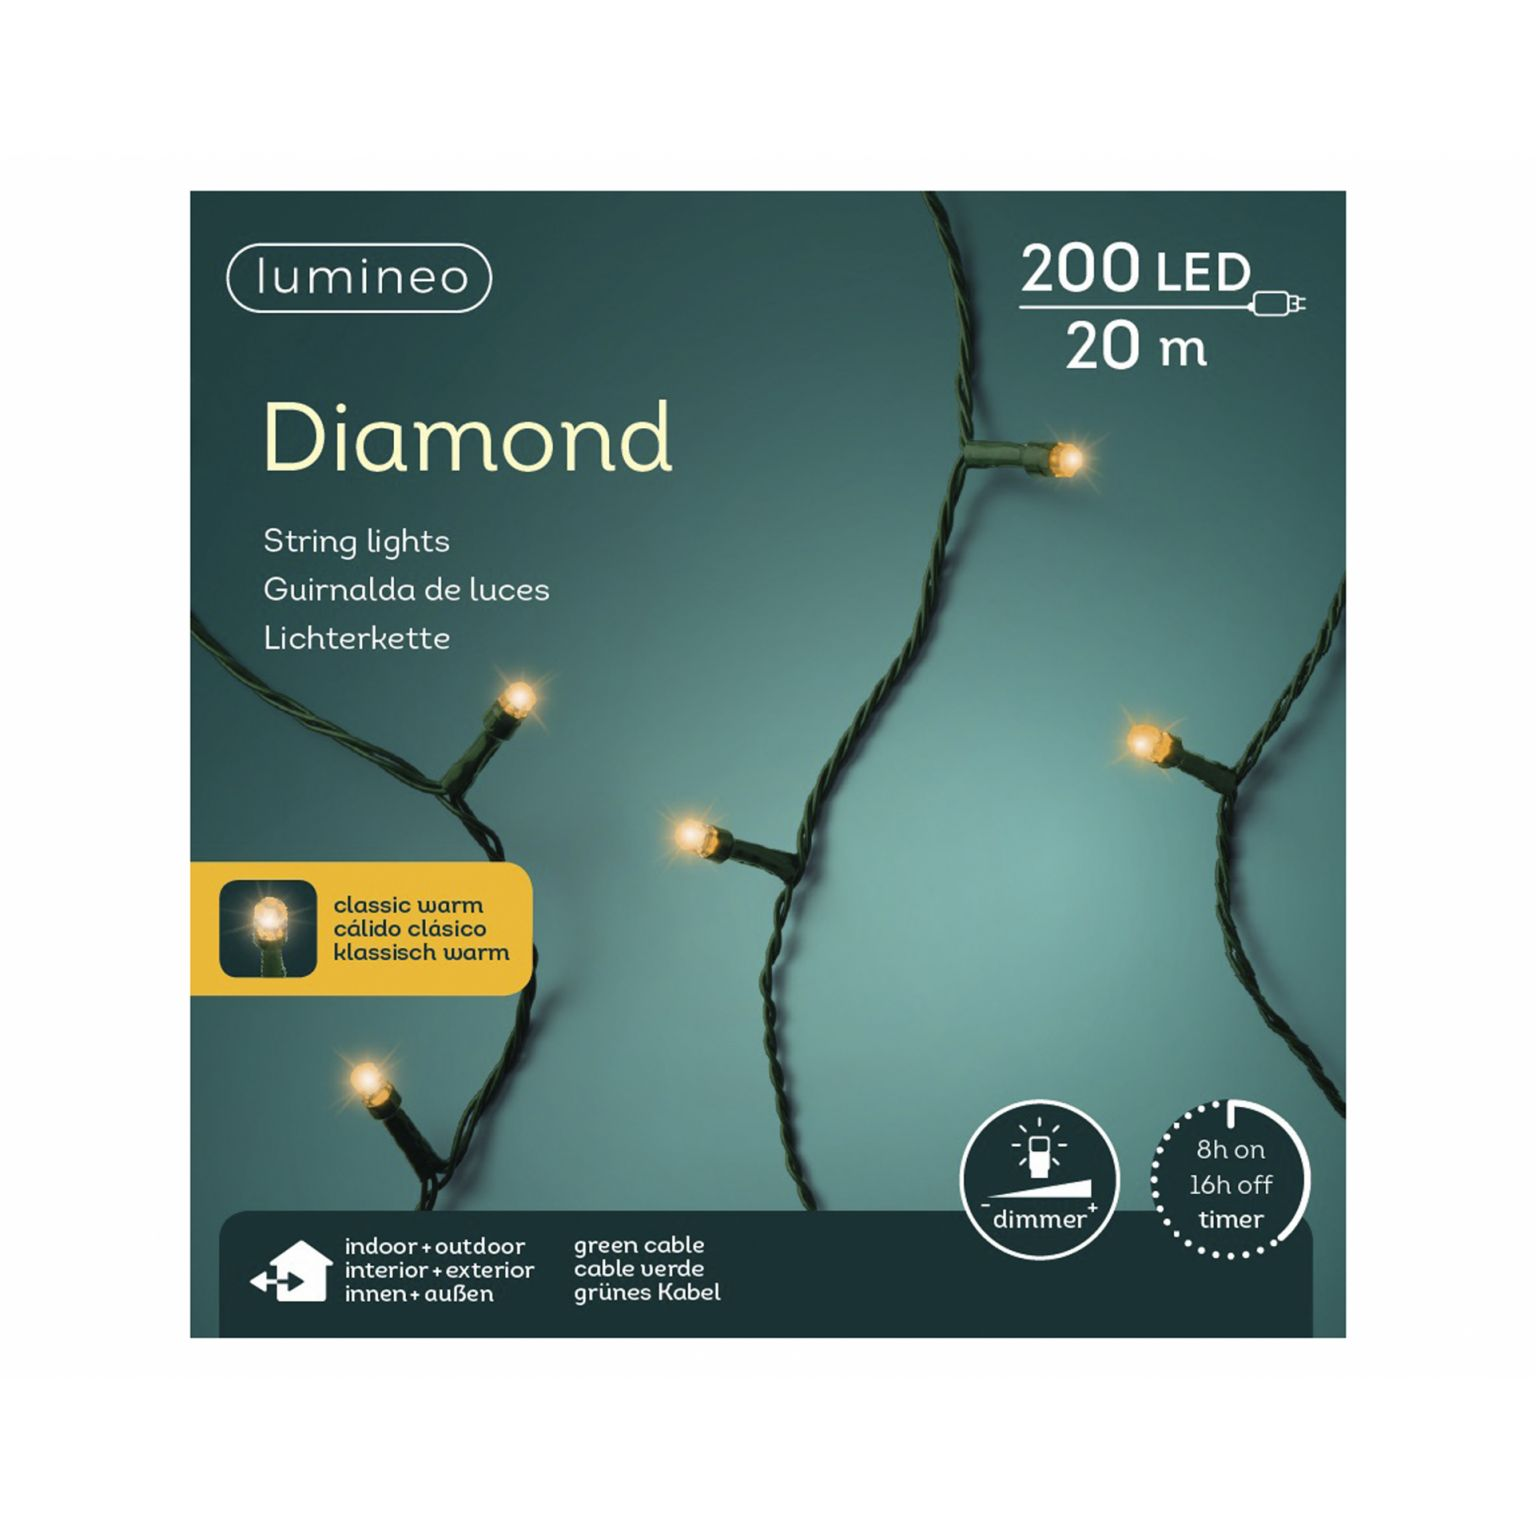 LED diamondverlichting lumineo 200 lamps 'klassiek warm